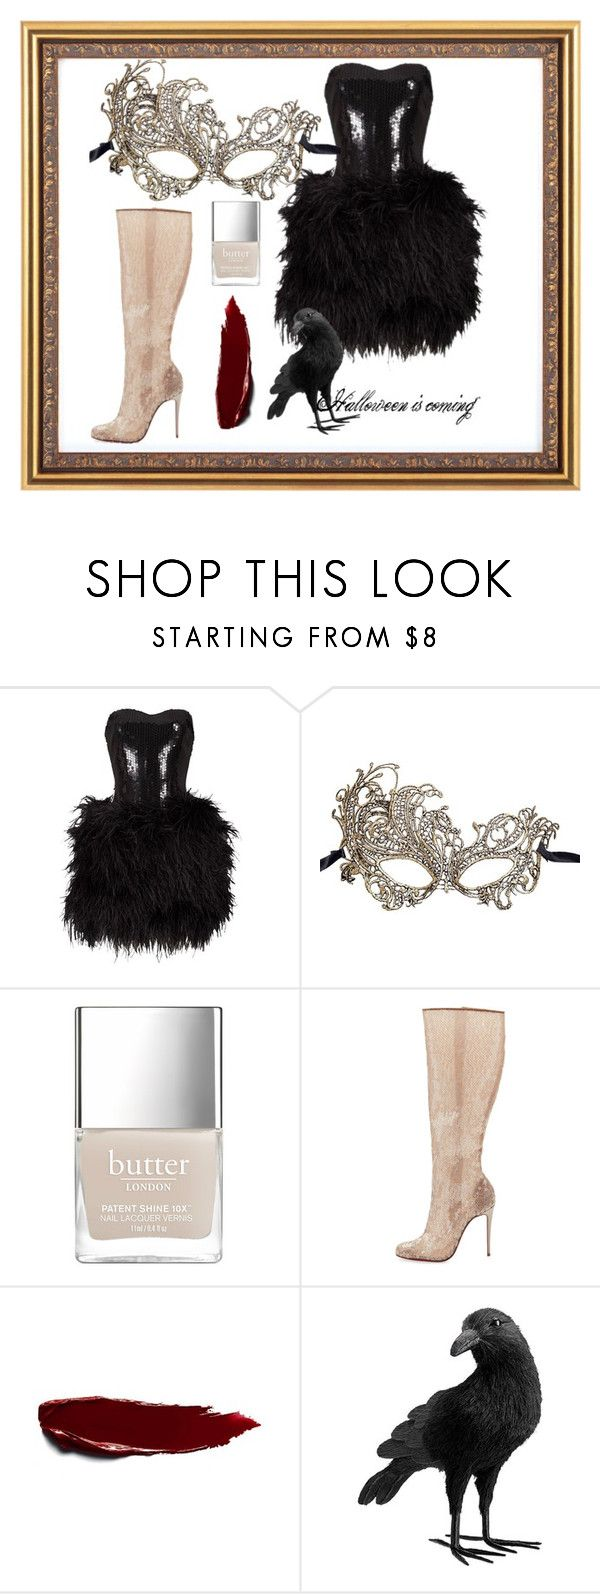 """Halloween is coming"" by scheylly ❤ liked on Polyvore featuring Lillie Rubin, Masquerade, Christian Louboutin and Pottery Barn"